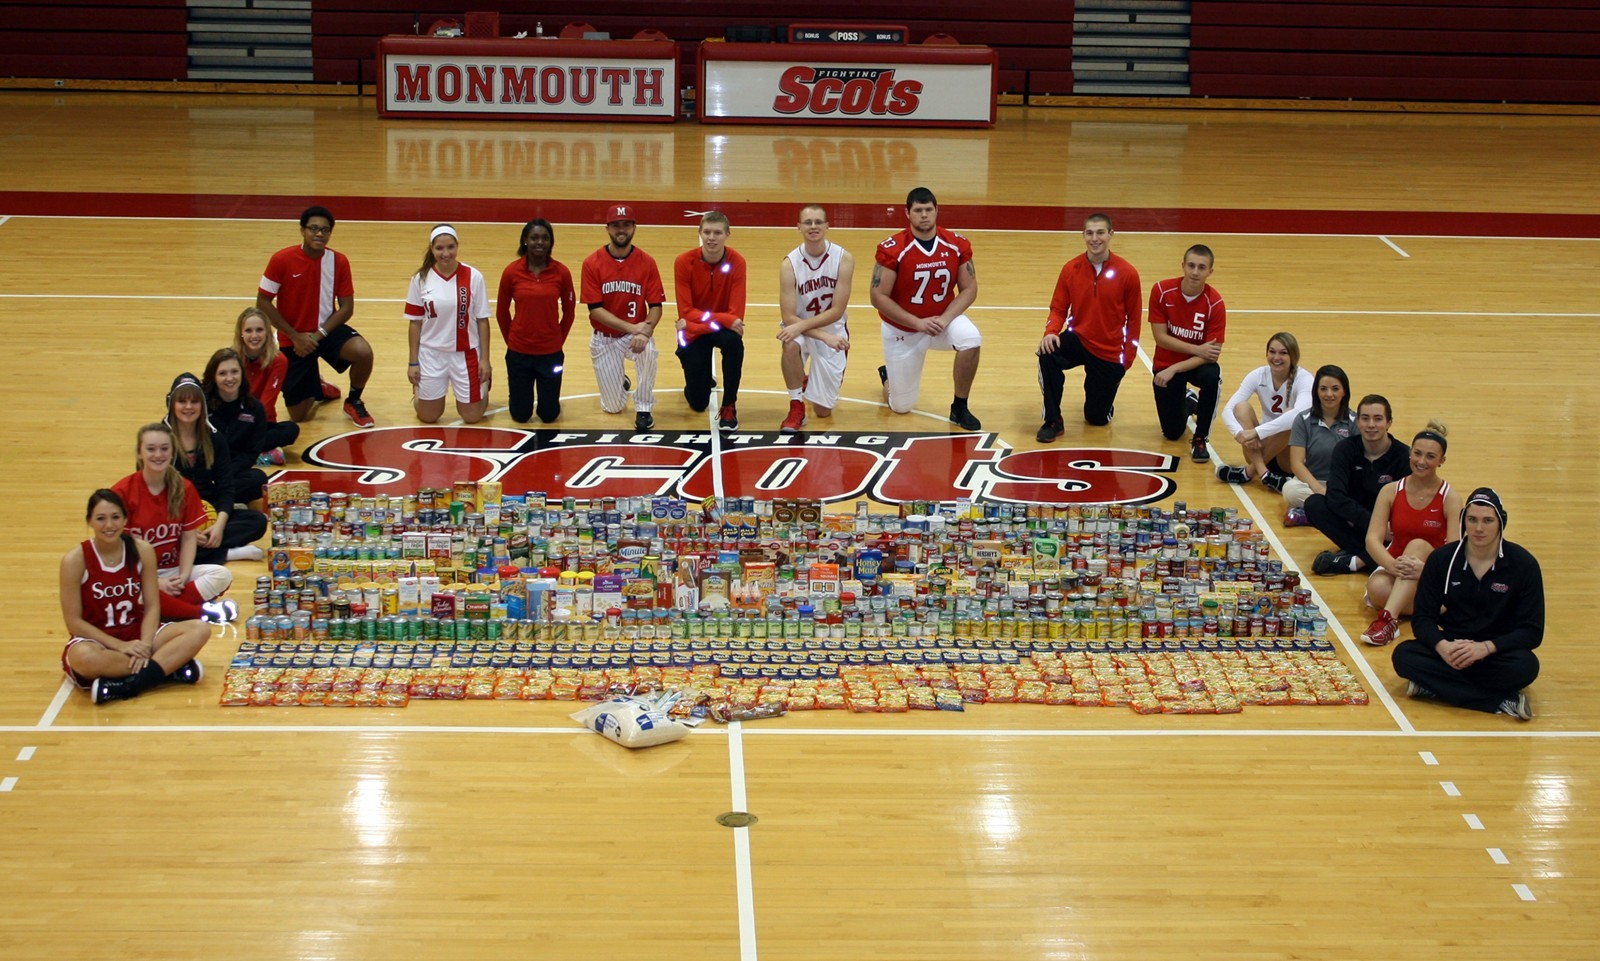 Monmouth College - Scots stepped up to the plate in Canned ...